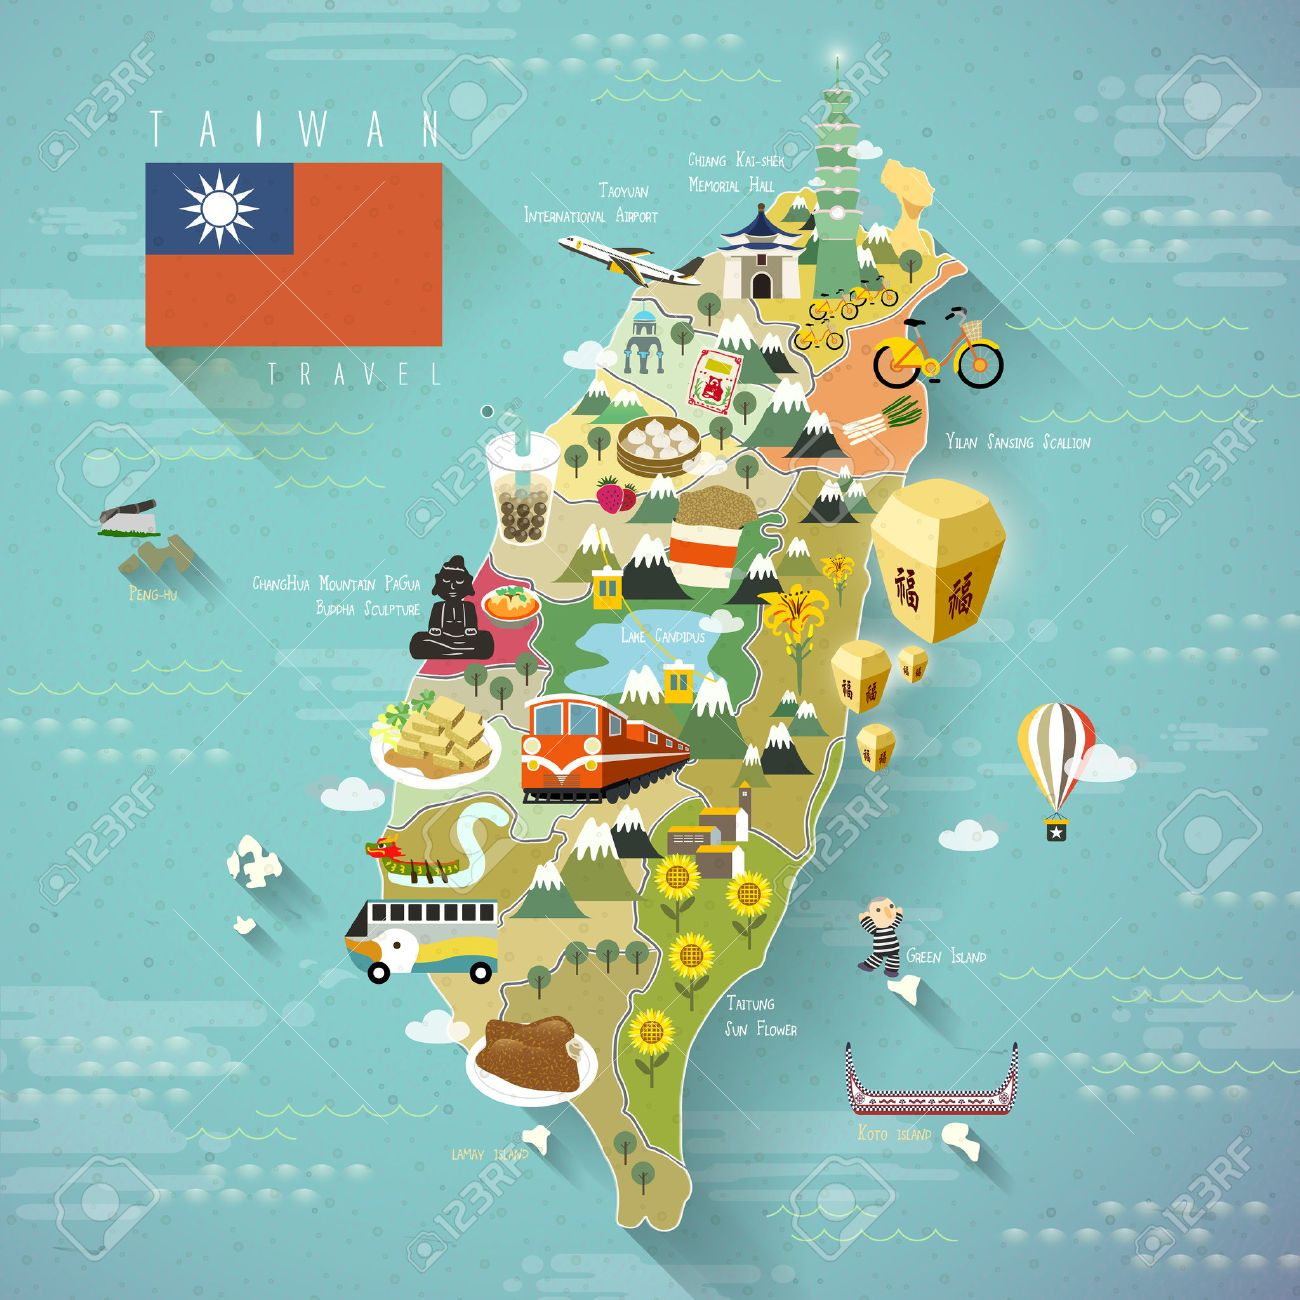 Lovely Taiwan Travel Map Blessing Word In Chinese On The – Taiwan Map For Tourist